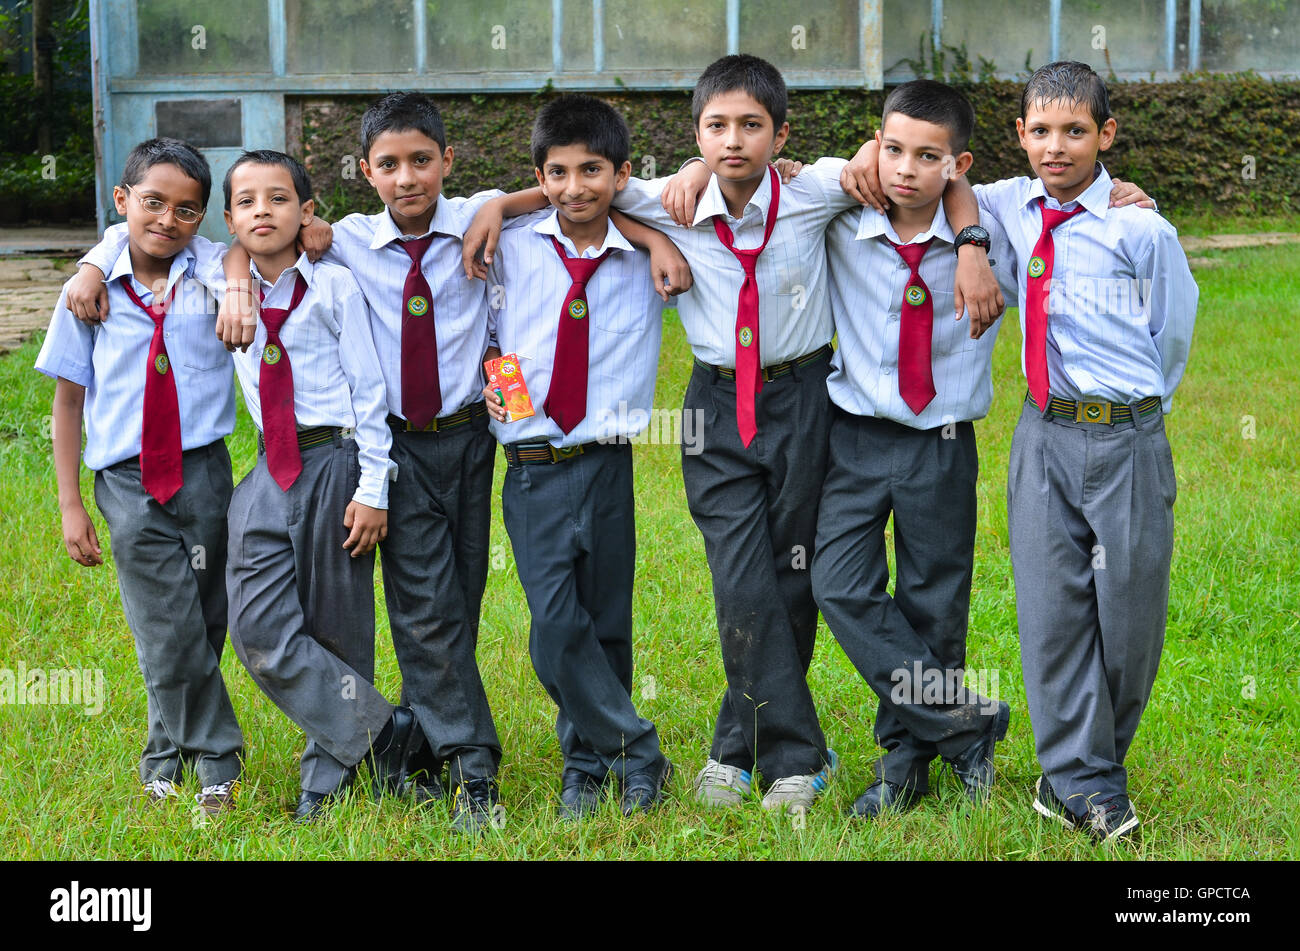 group of nepalese schoolboys - Stock Image